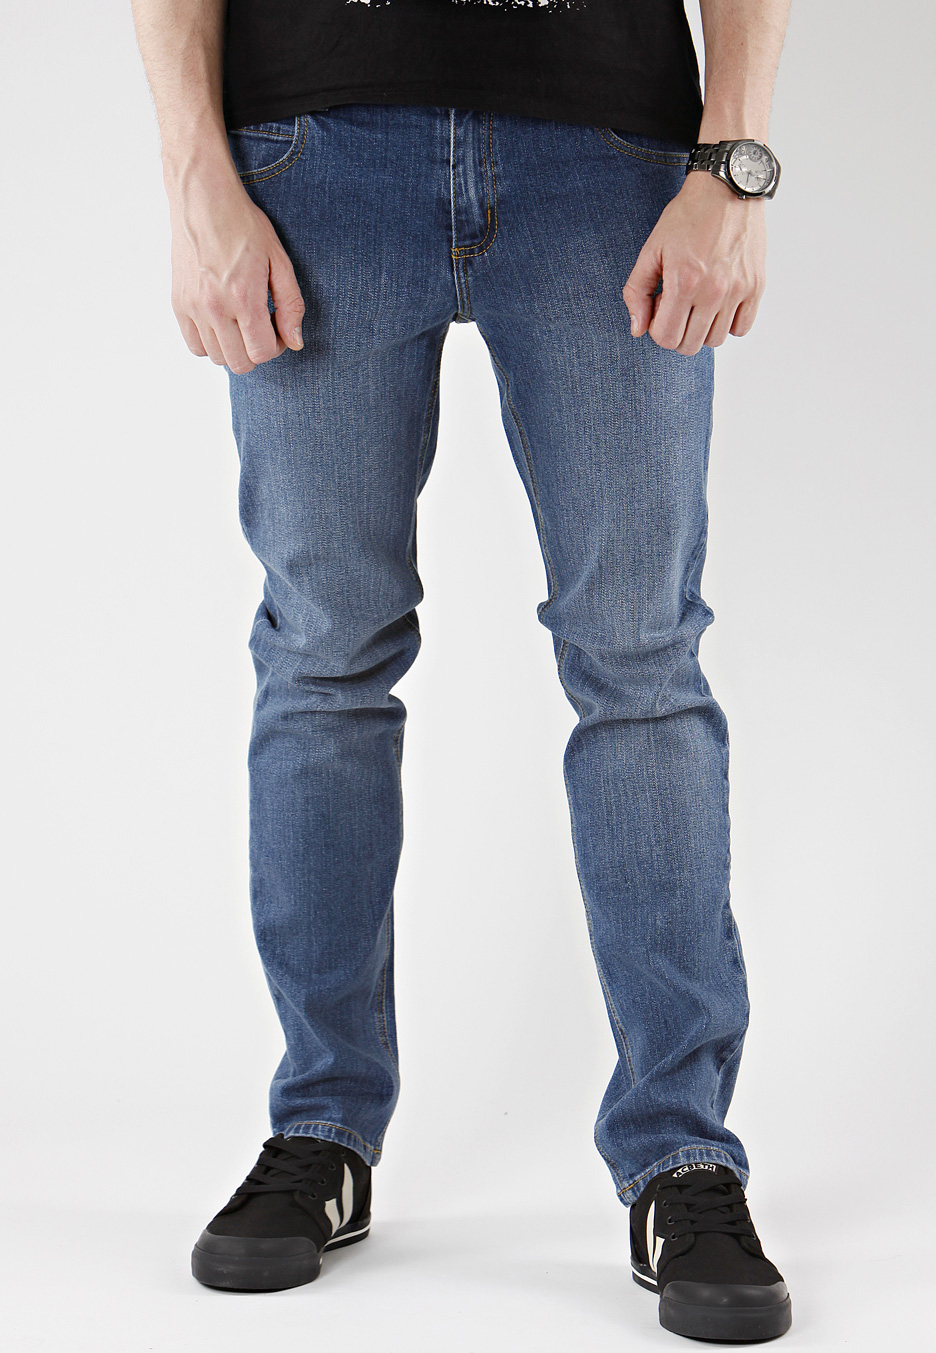 Find wholesale blue jeans online from China blue jeans wholesalers and dropshippers. DHgate helps you get high quality discount blue jeans at bulk prices. wilmergolding6jn1.gq provides blue jeans items from China top selected Men's Jeans, Men's Clothing, Apparel suppliers at .